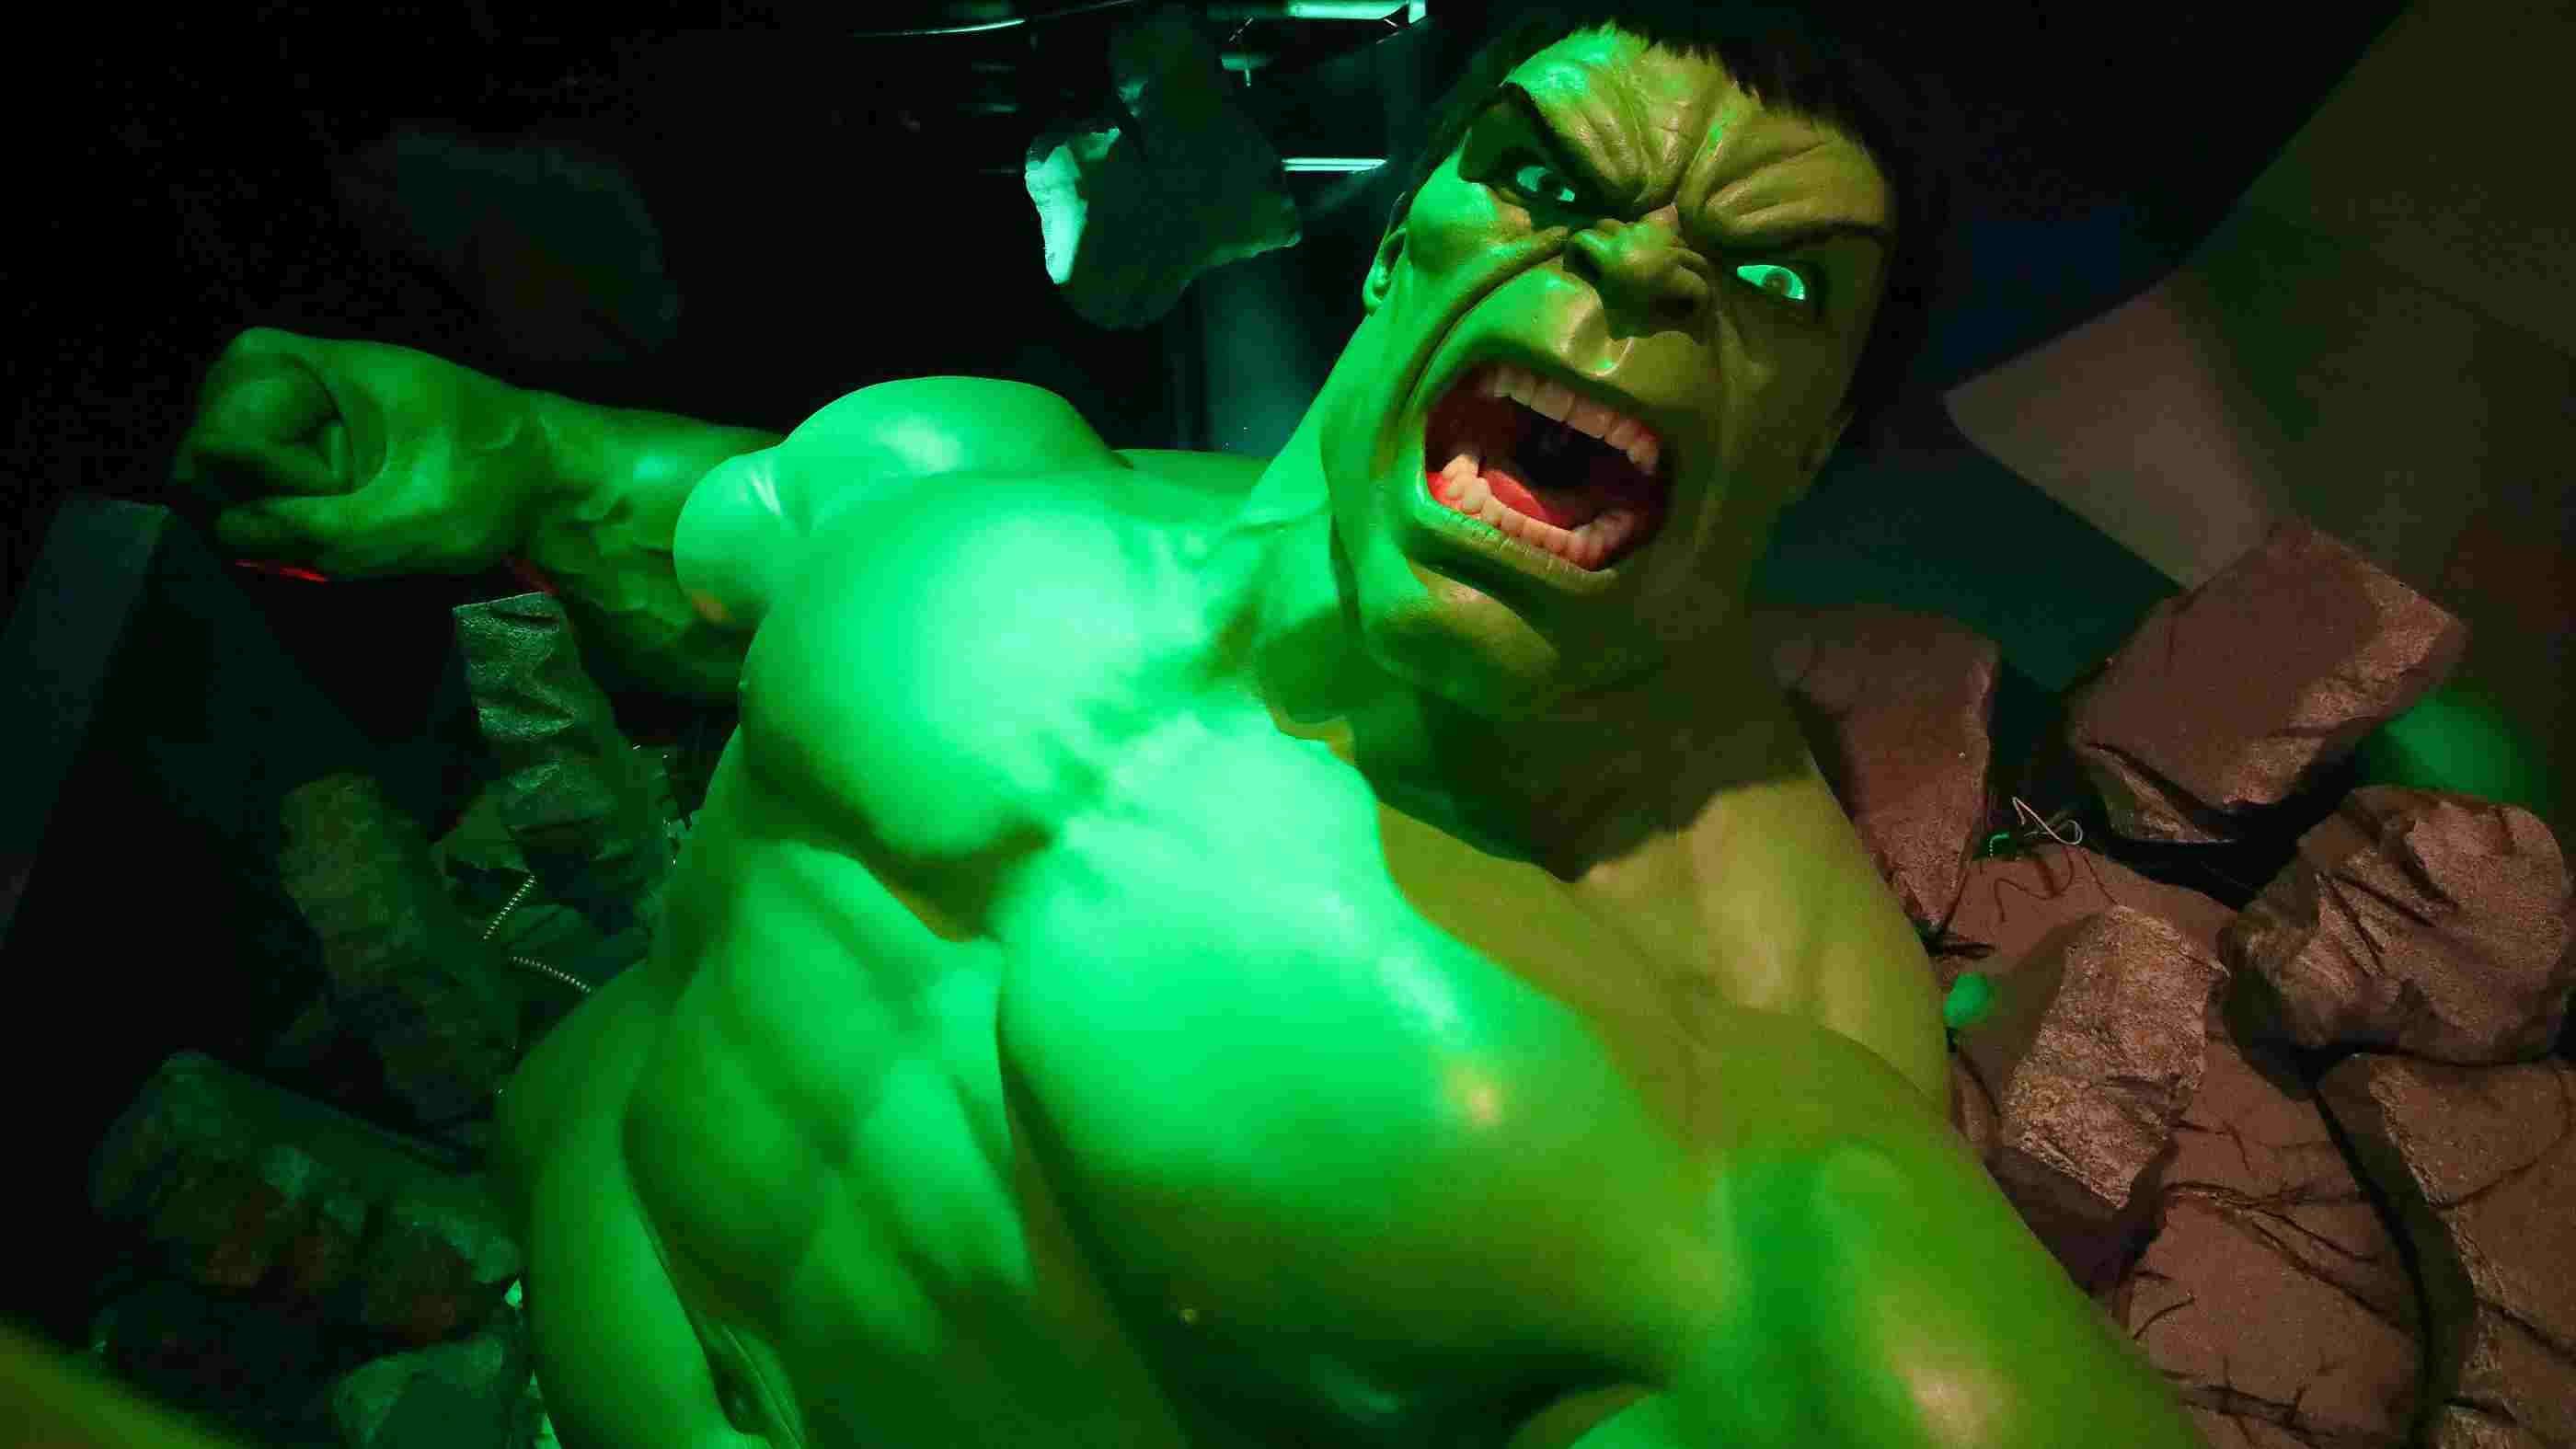 Hulk - Giant Model- Madame Tussauds